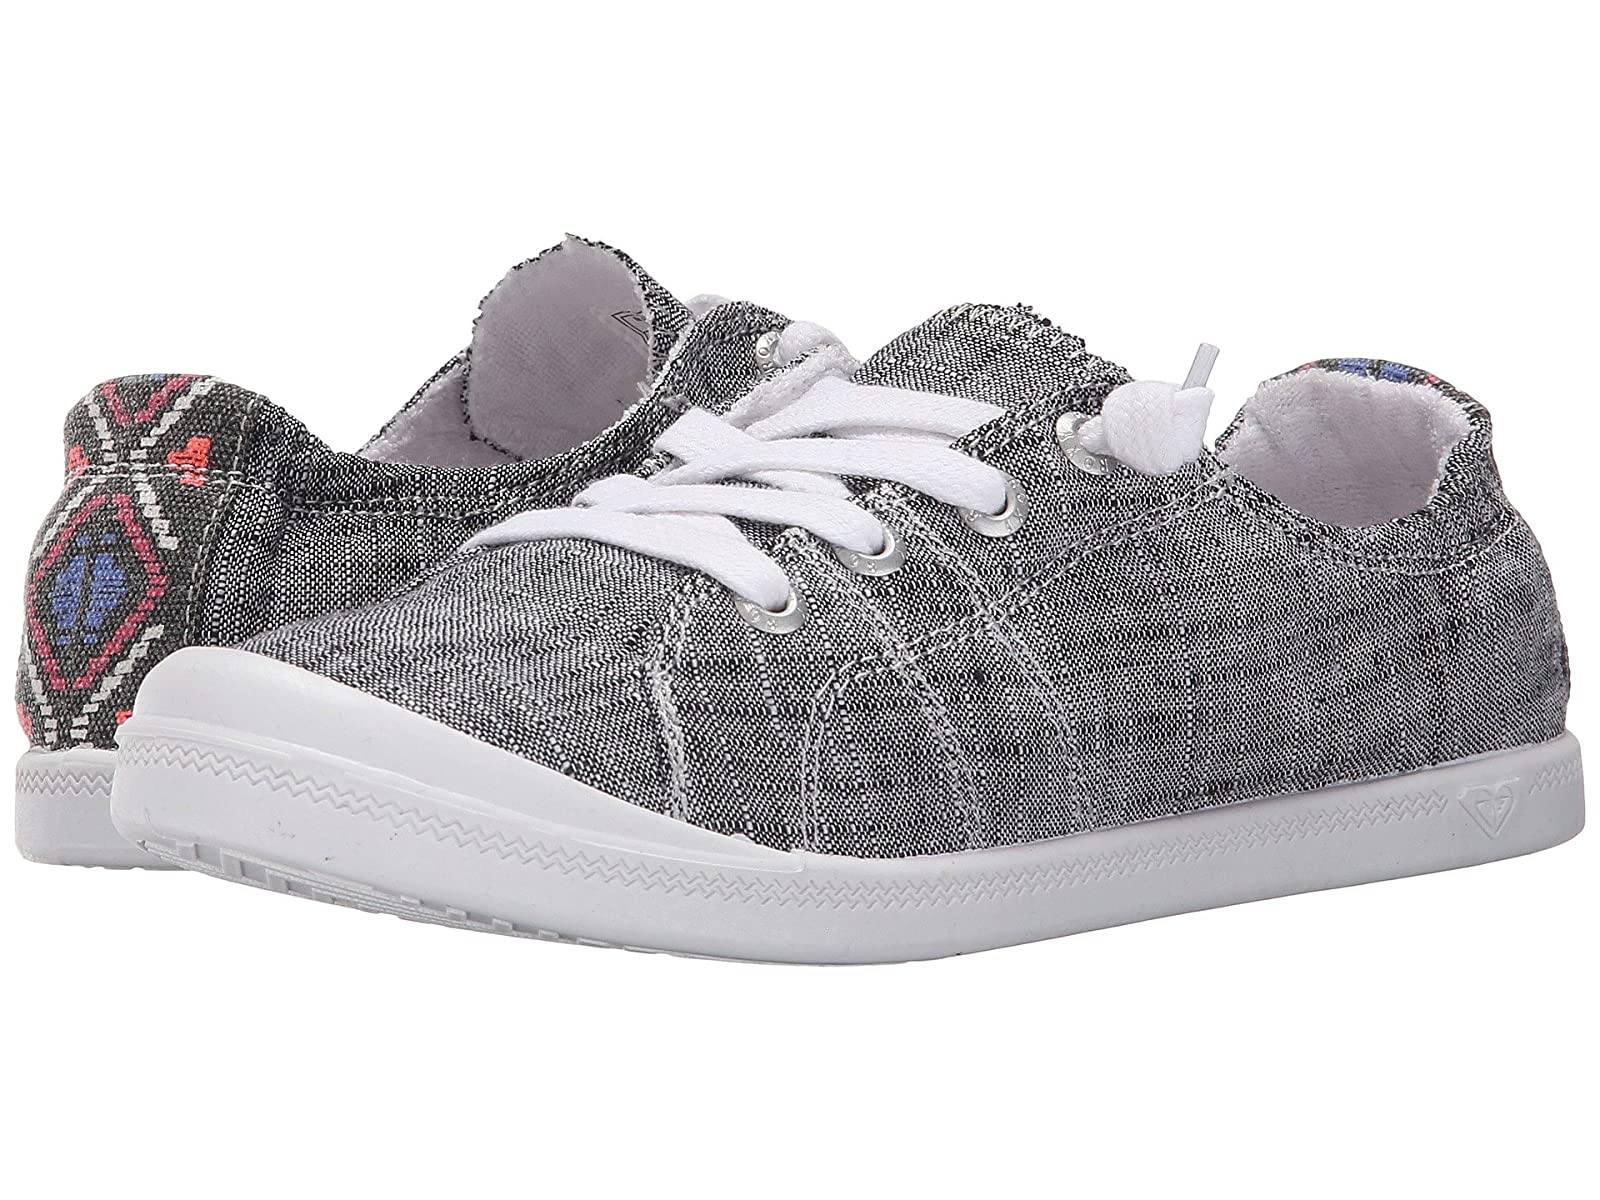 Roxy Rory BayshoreAtmospheric grades have affordable shoes